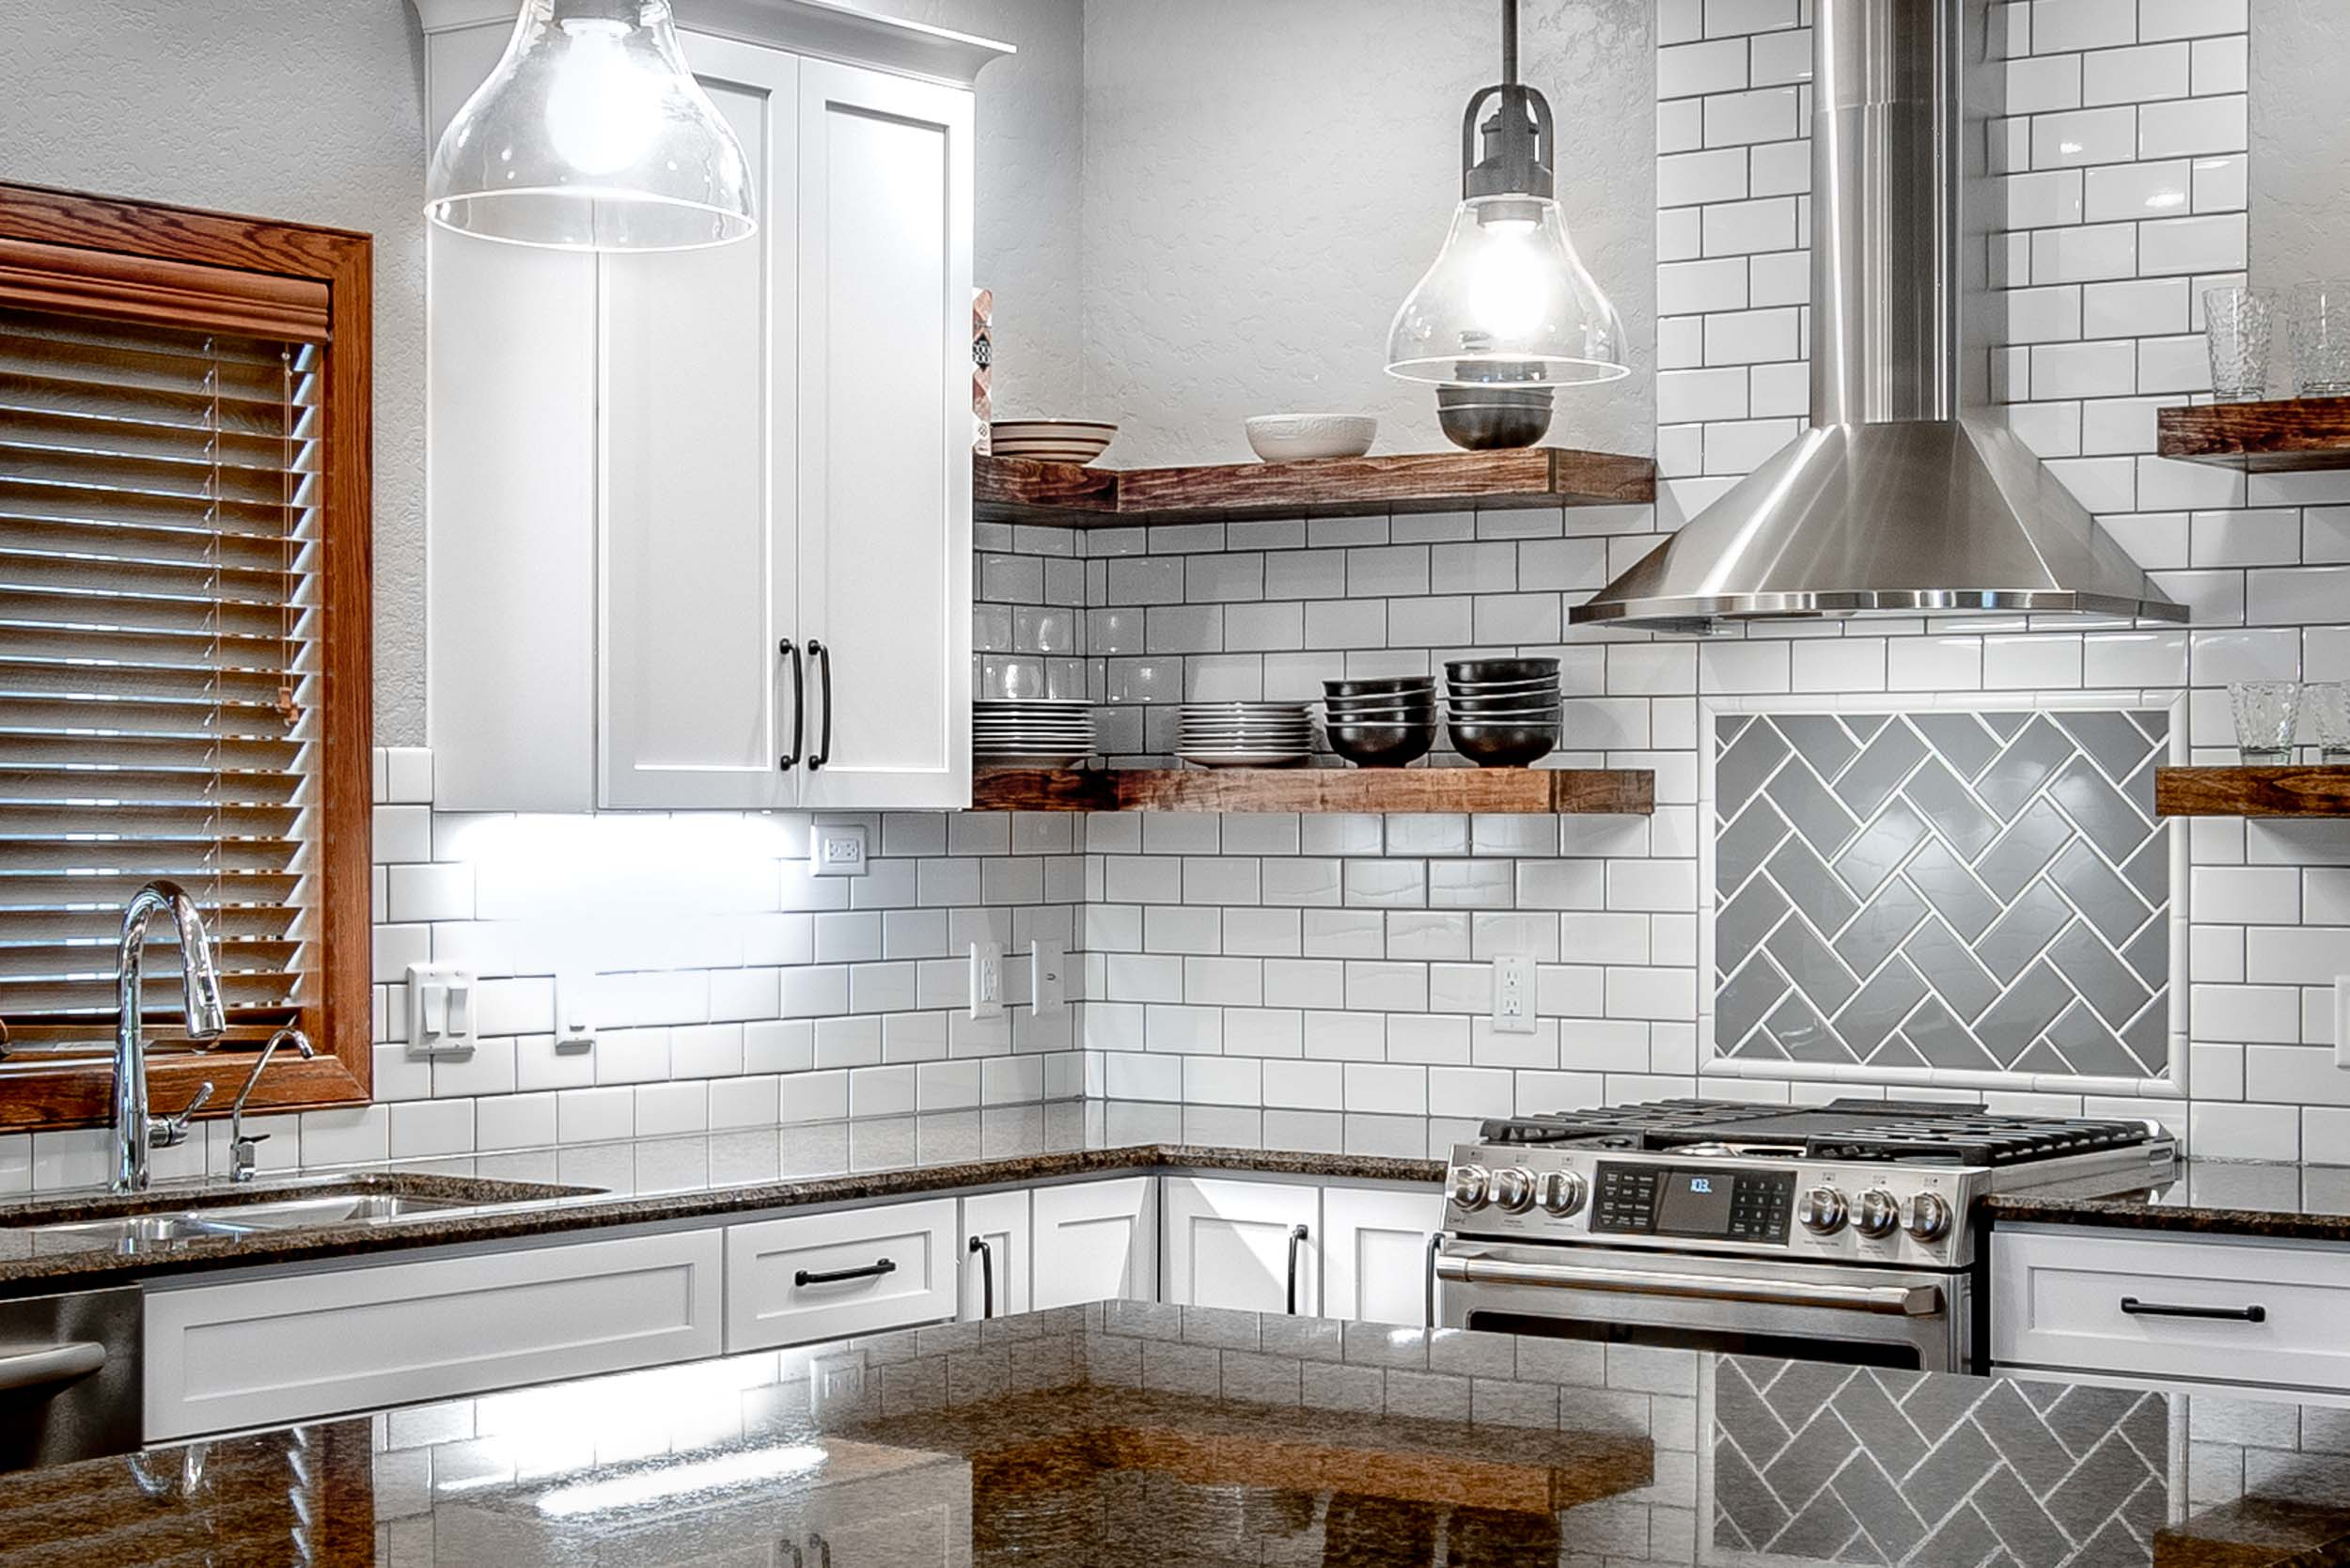 Choosing Grout Color For Kitchen And Bathroom Tile Design Degnan Design Build Remodel